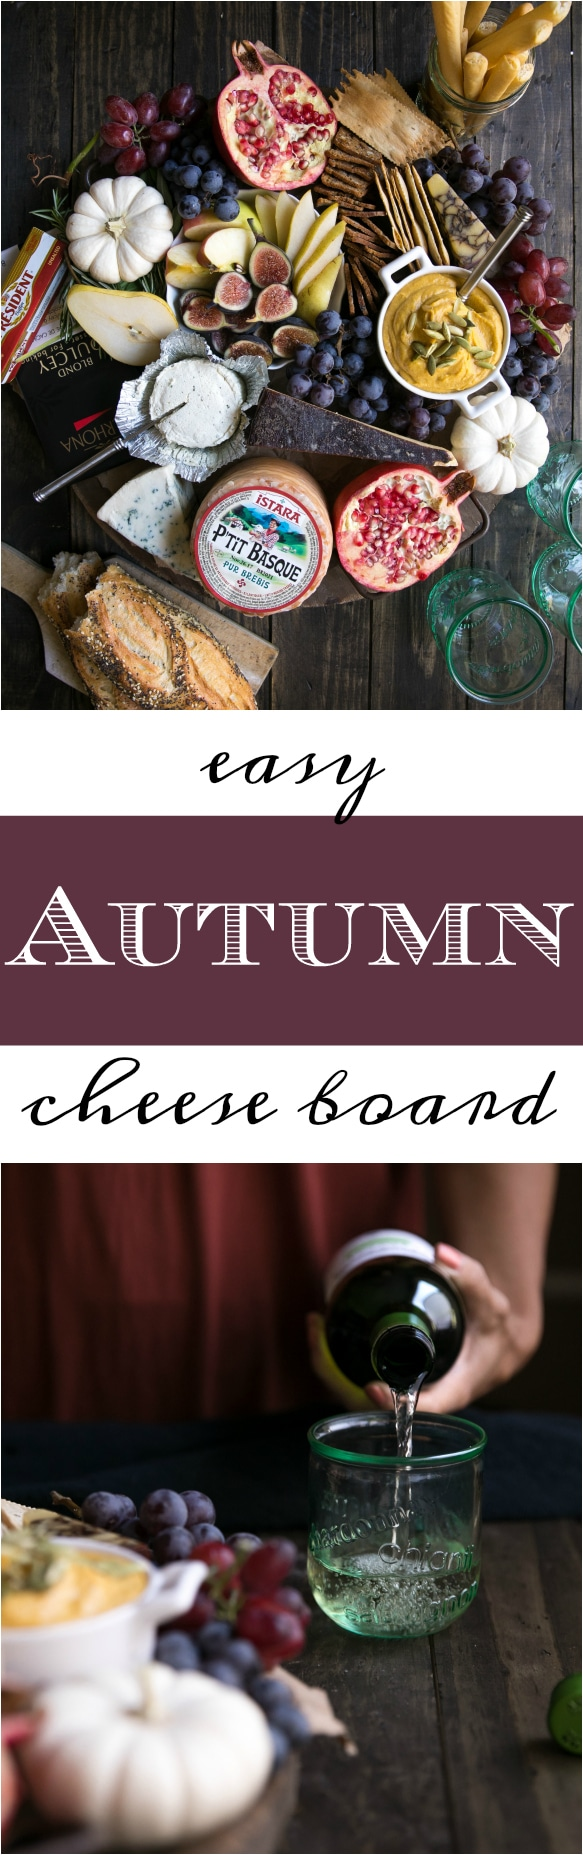 Keep entertaining easy with a beautiful autumn fruit and cheese board. Ready in just minutes, pair a selection of cheeses with few of your favorite wines and get the party started! #cheese #cheeseboard #autumn #wine #entertaining #appetizers @theforkedspoon